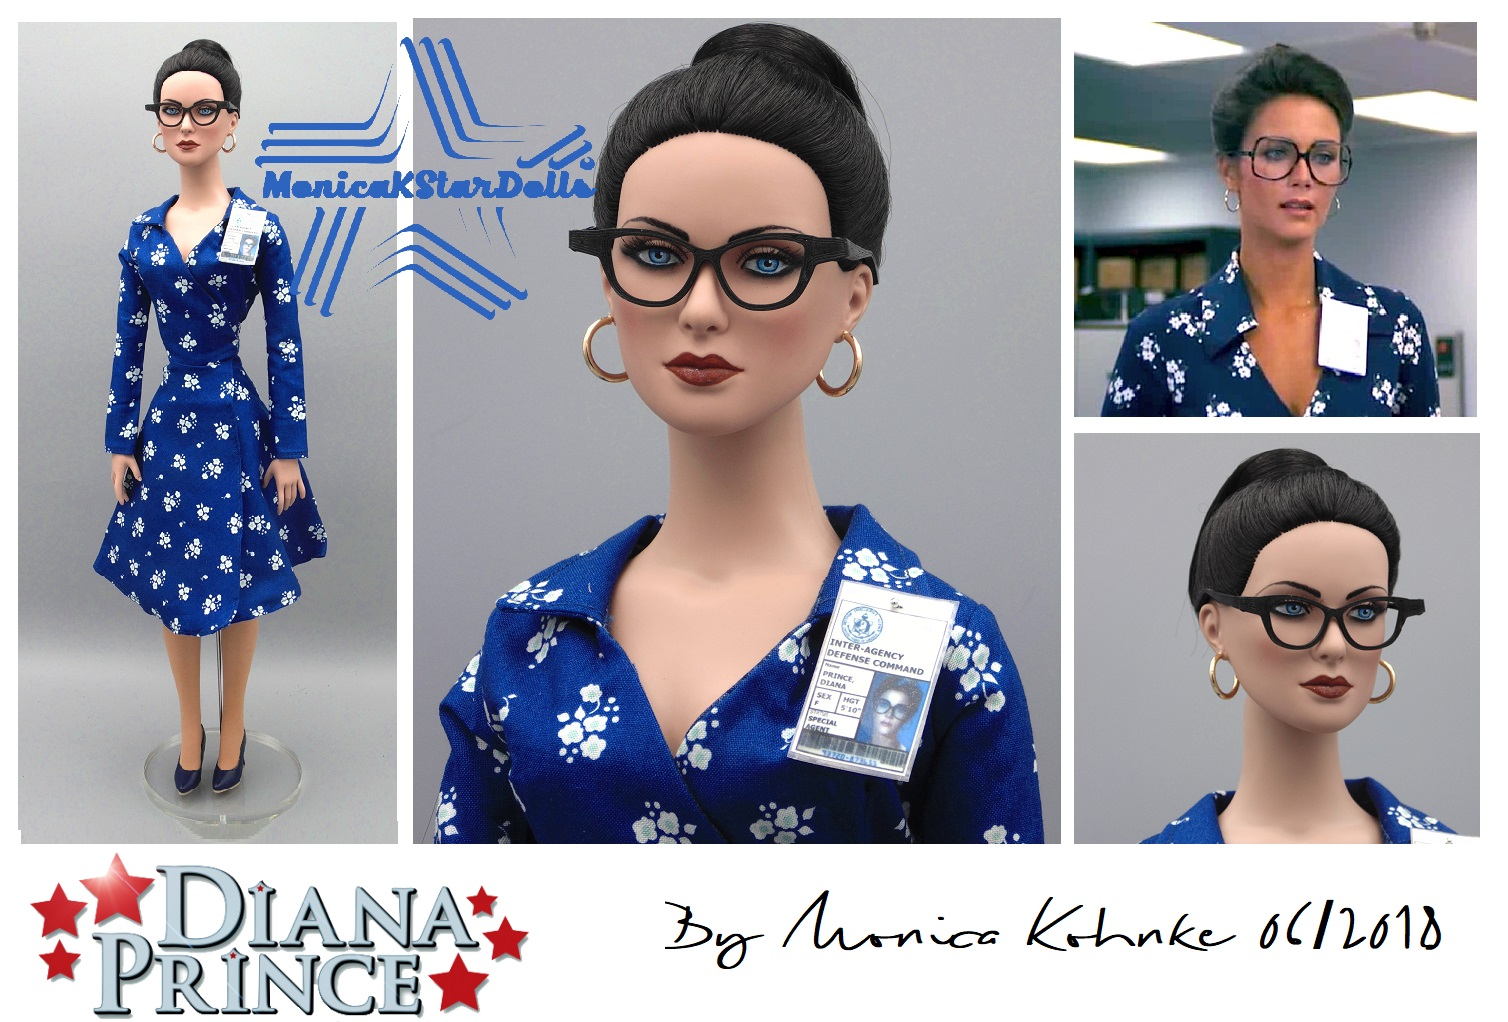 Diana Prince 22 inches